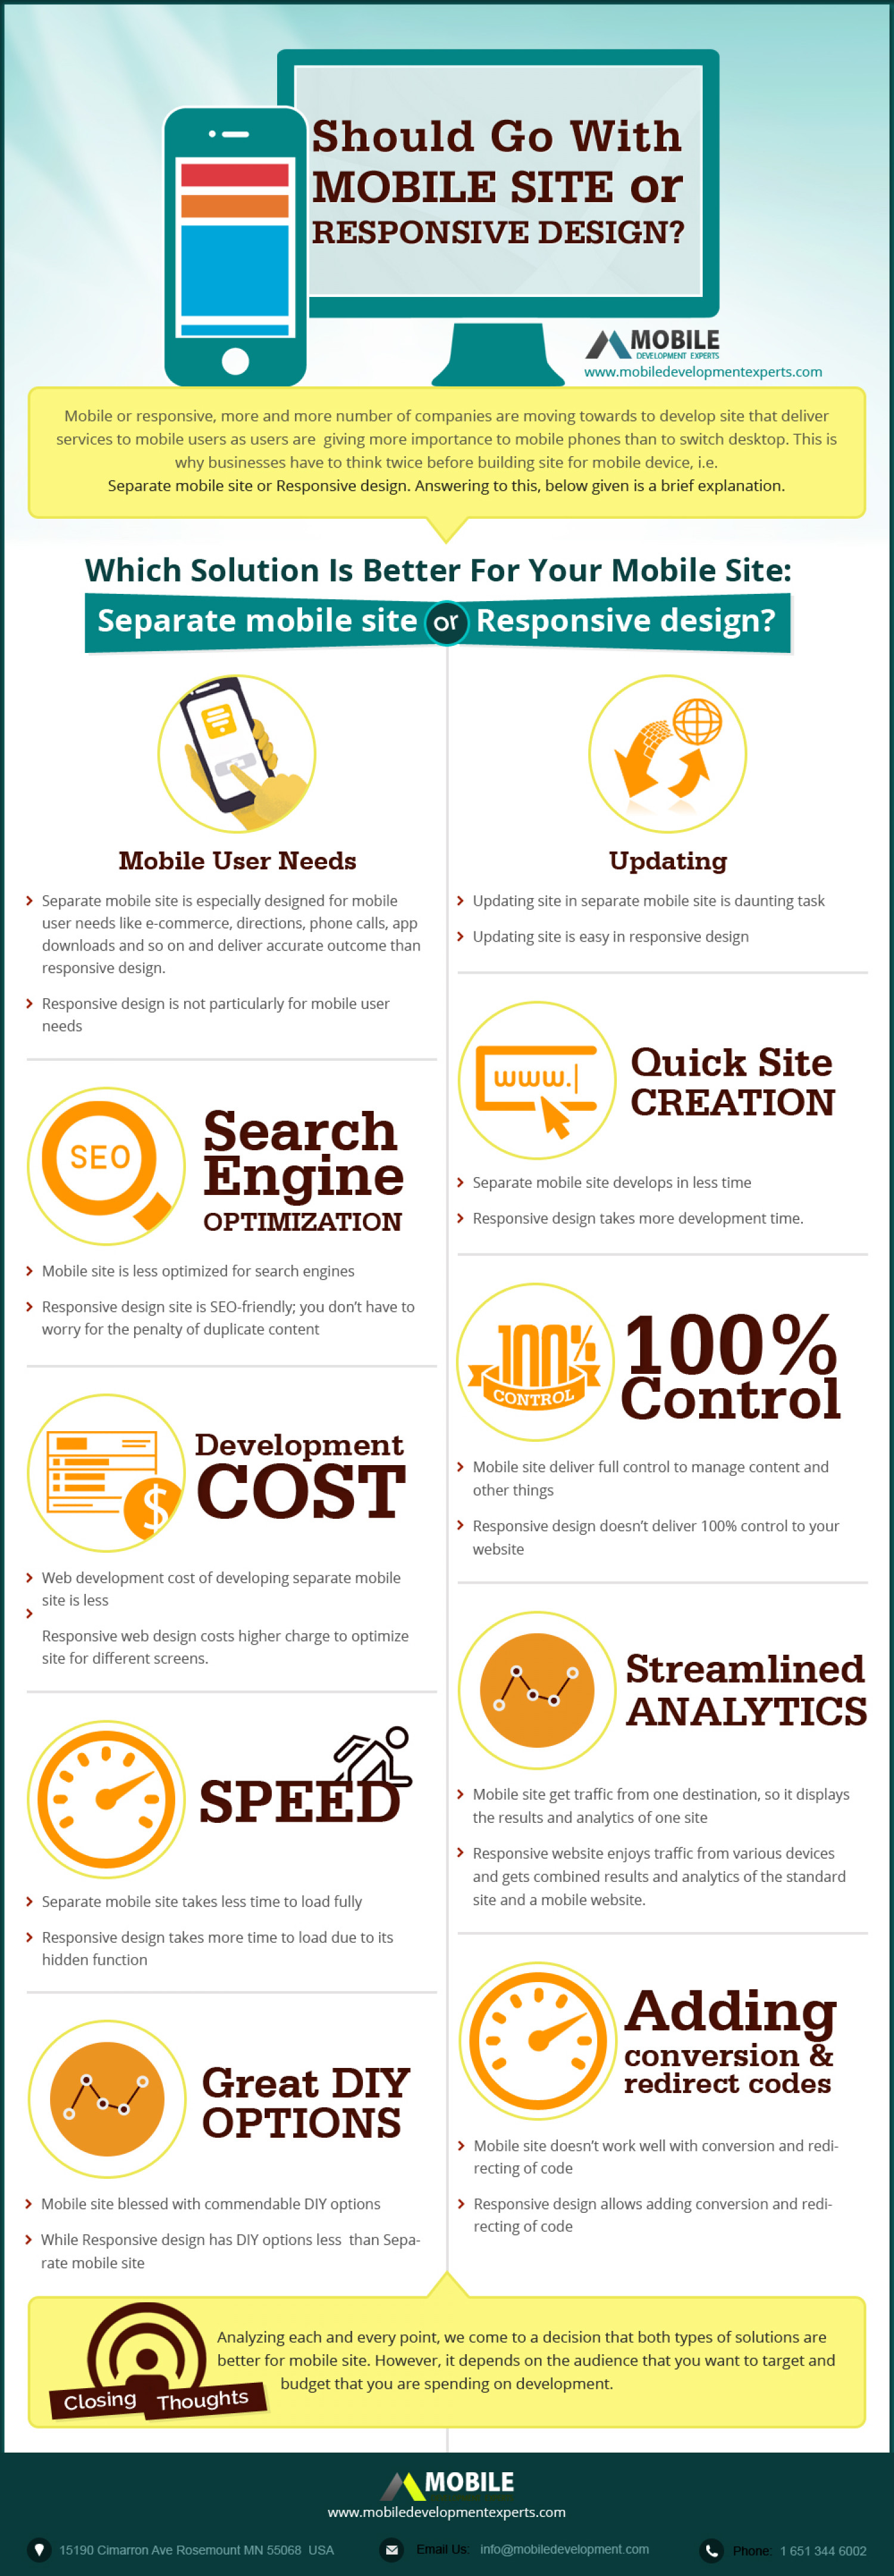 Should Go With Mobile Site or Responsive Design Infographic